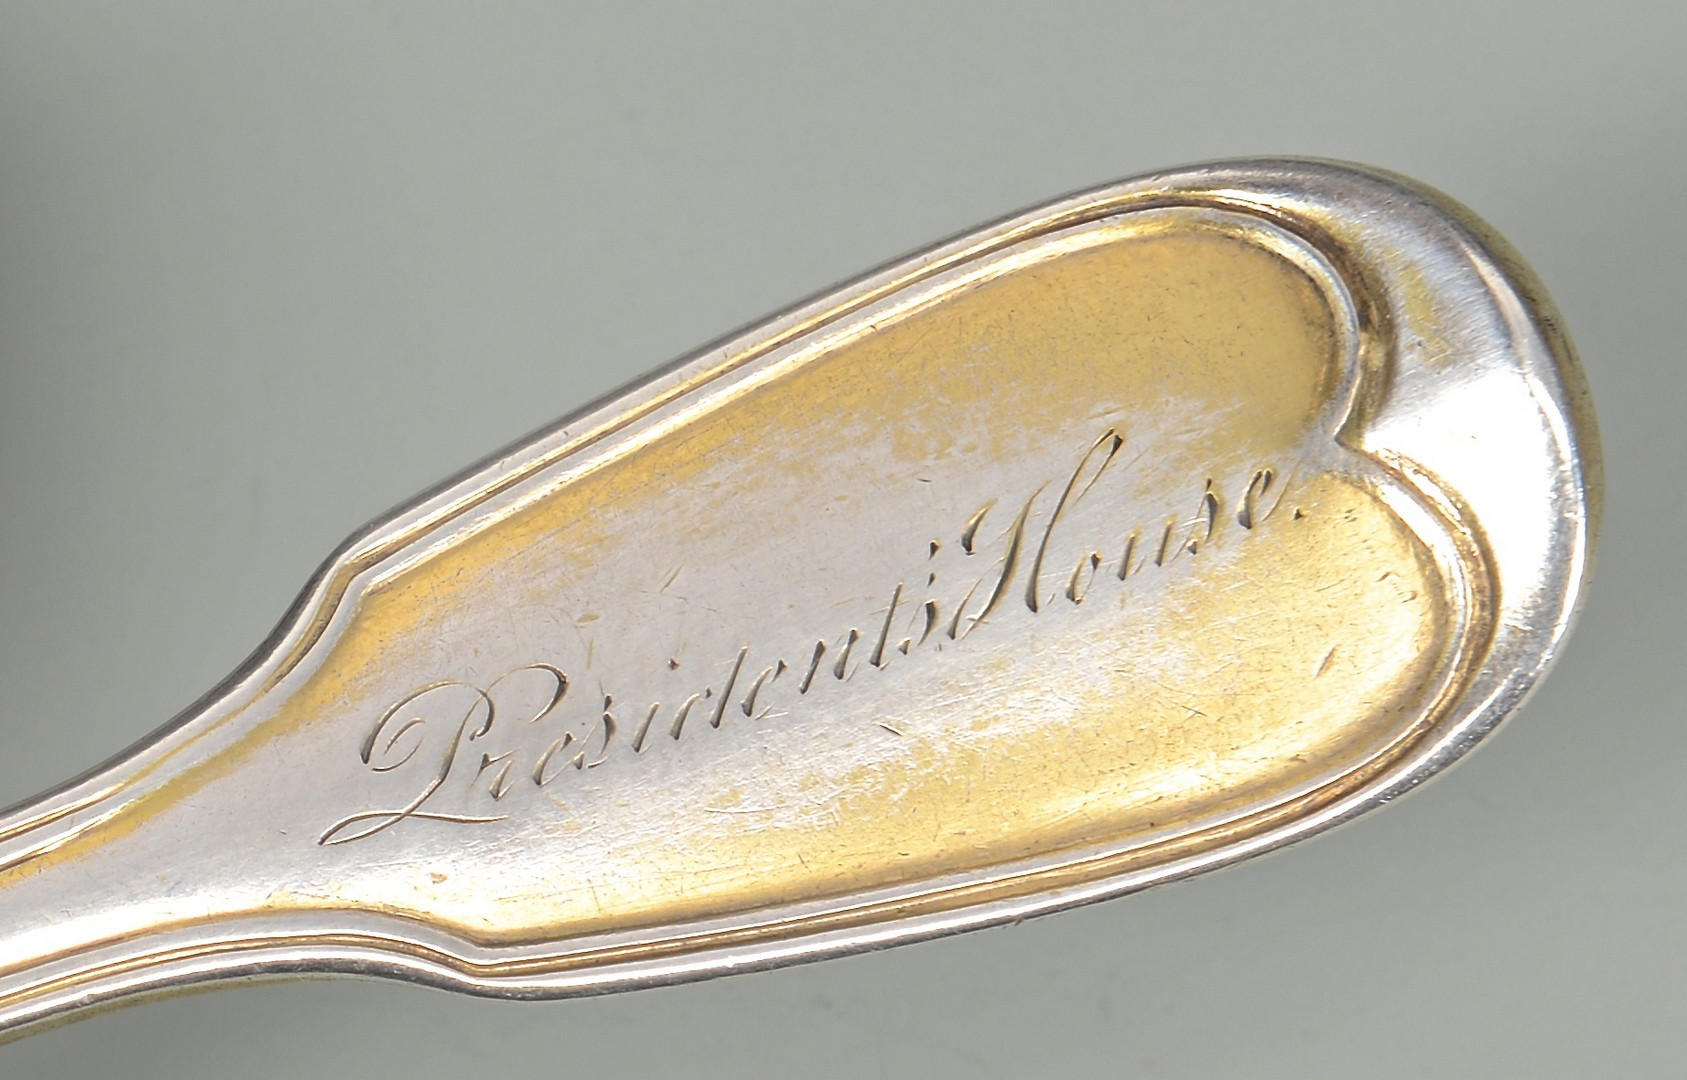 Lot 49: Andrew Jackson Presidential Silver Spoon